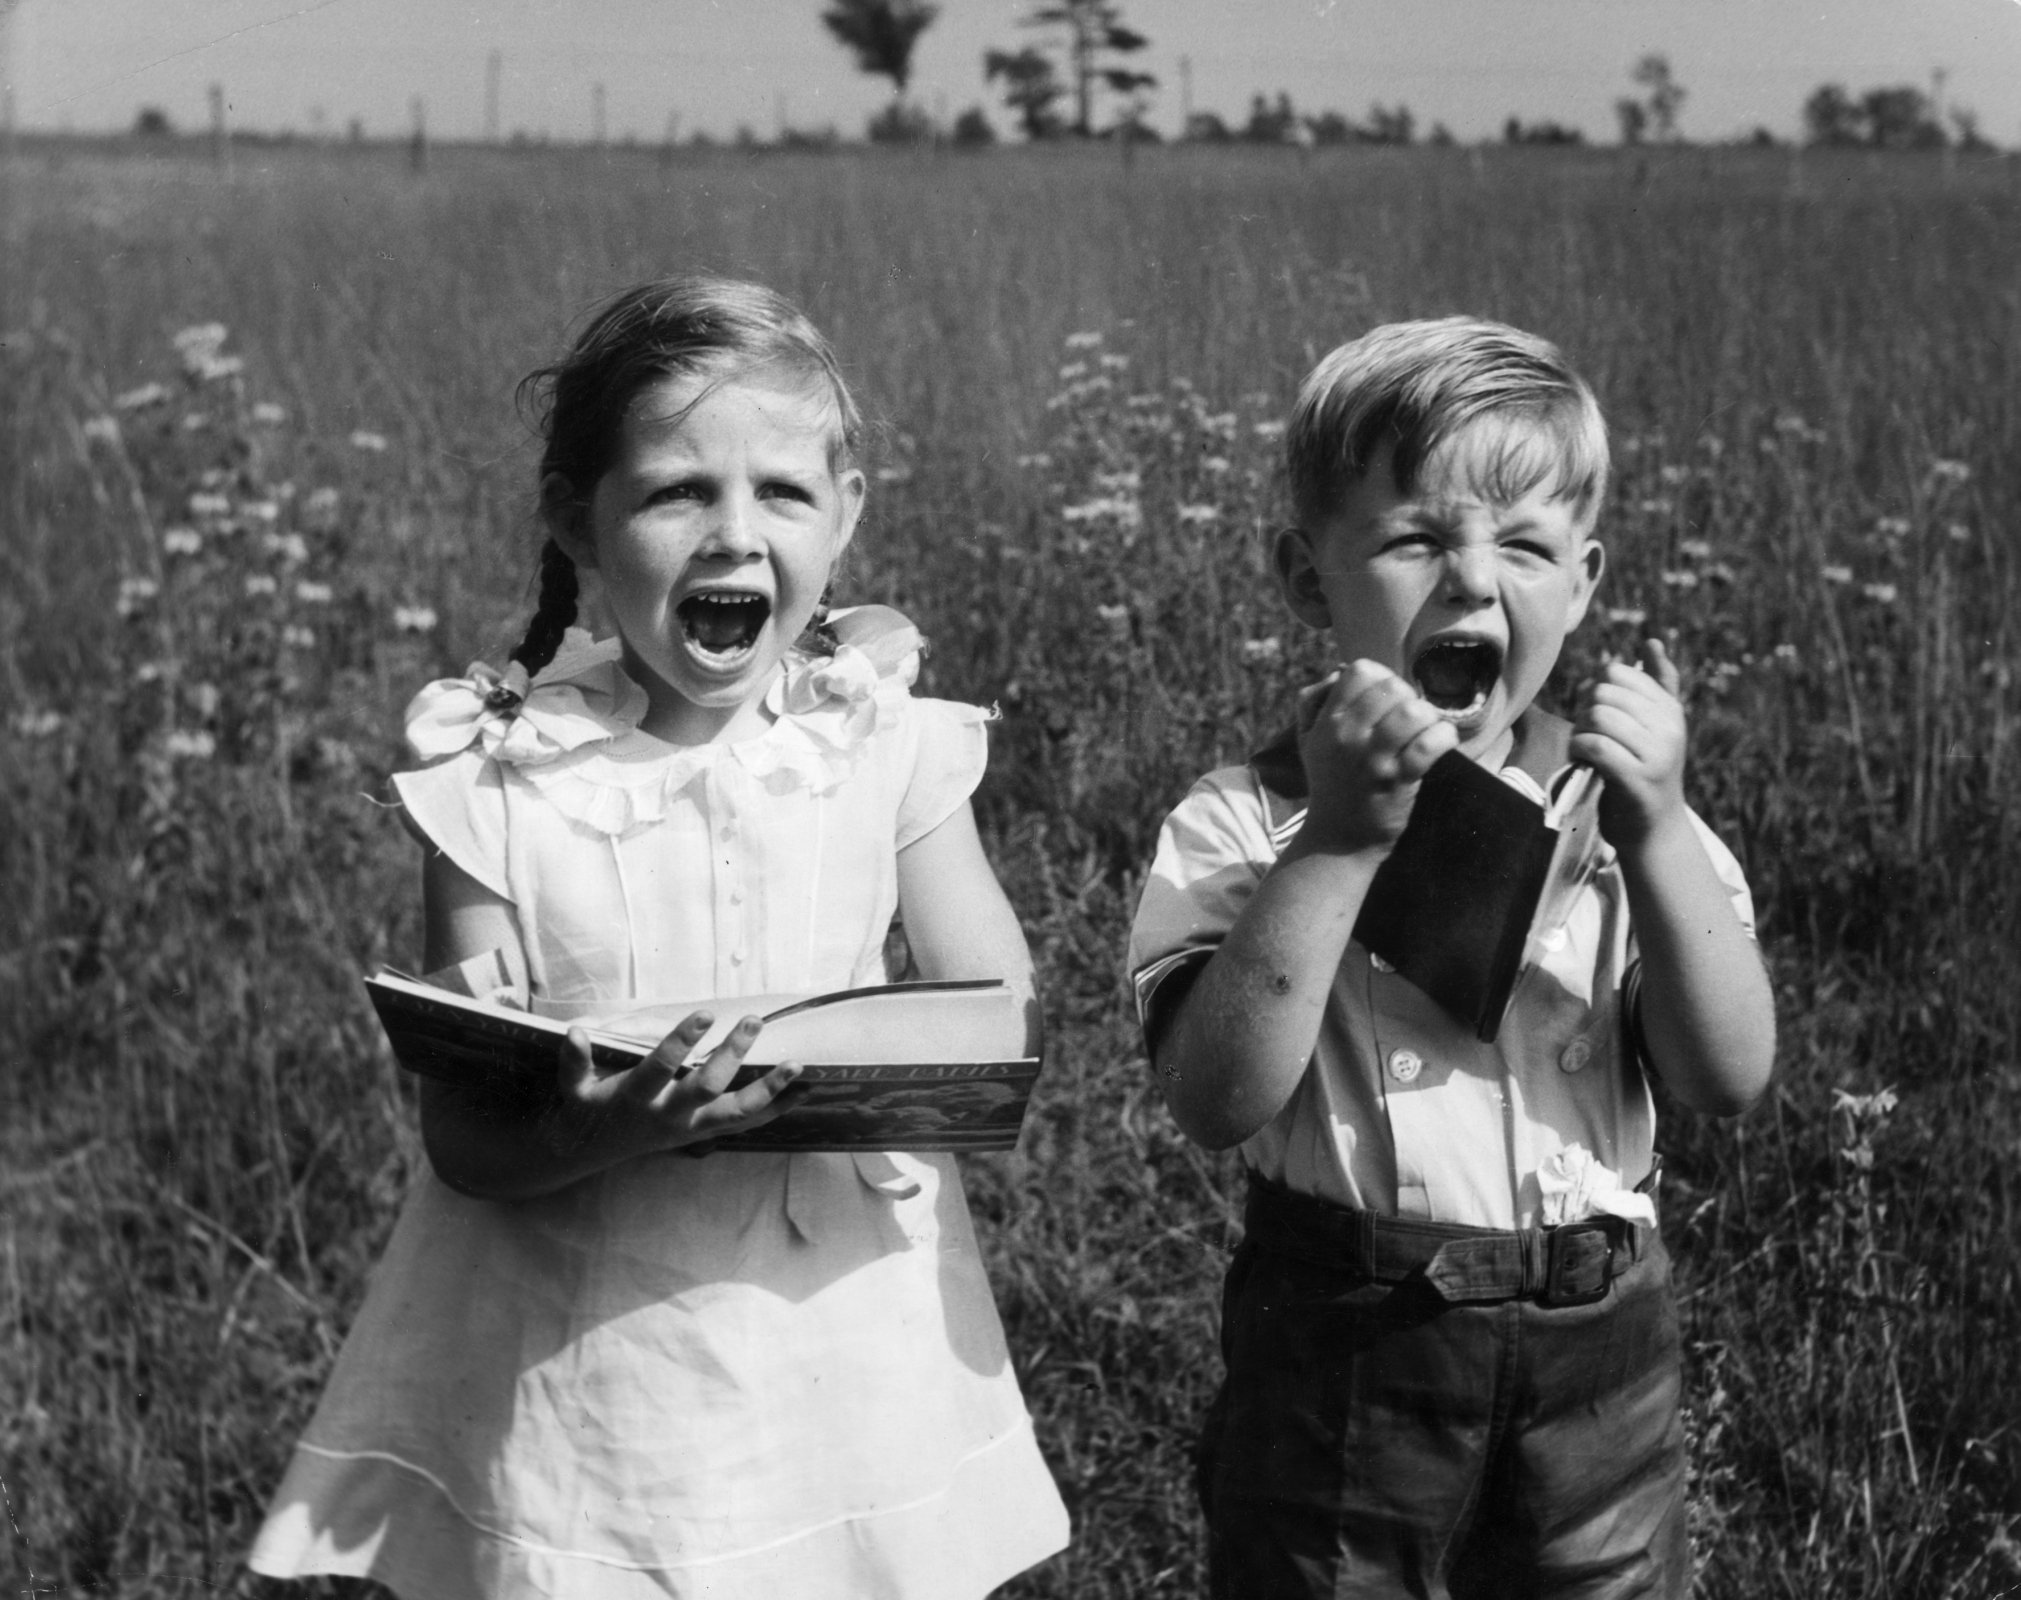 A young boy and girl stand in a farm field holding storybooks and screaming.